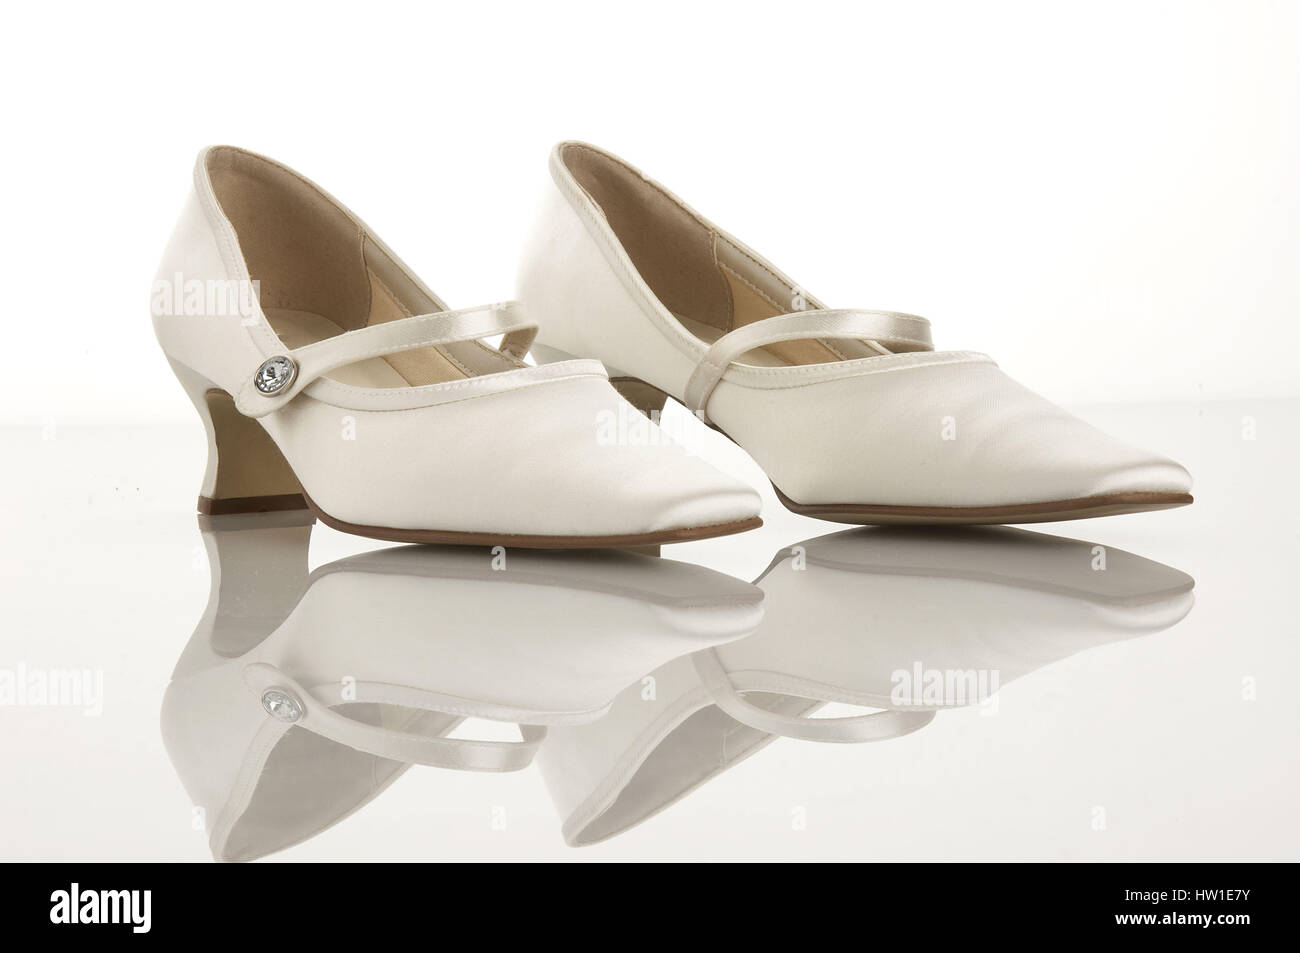 new styles 6a6a8 99fec Wedding shoes, Hochzeitsschuhe Stock Photo: 135872127 - Alamy